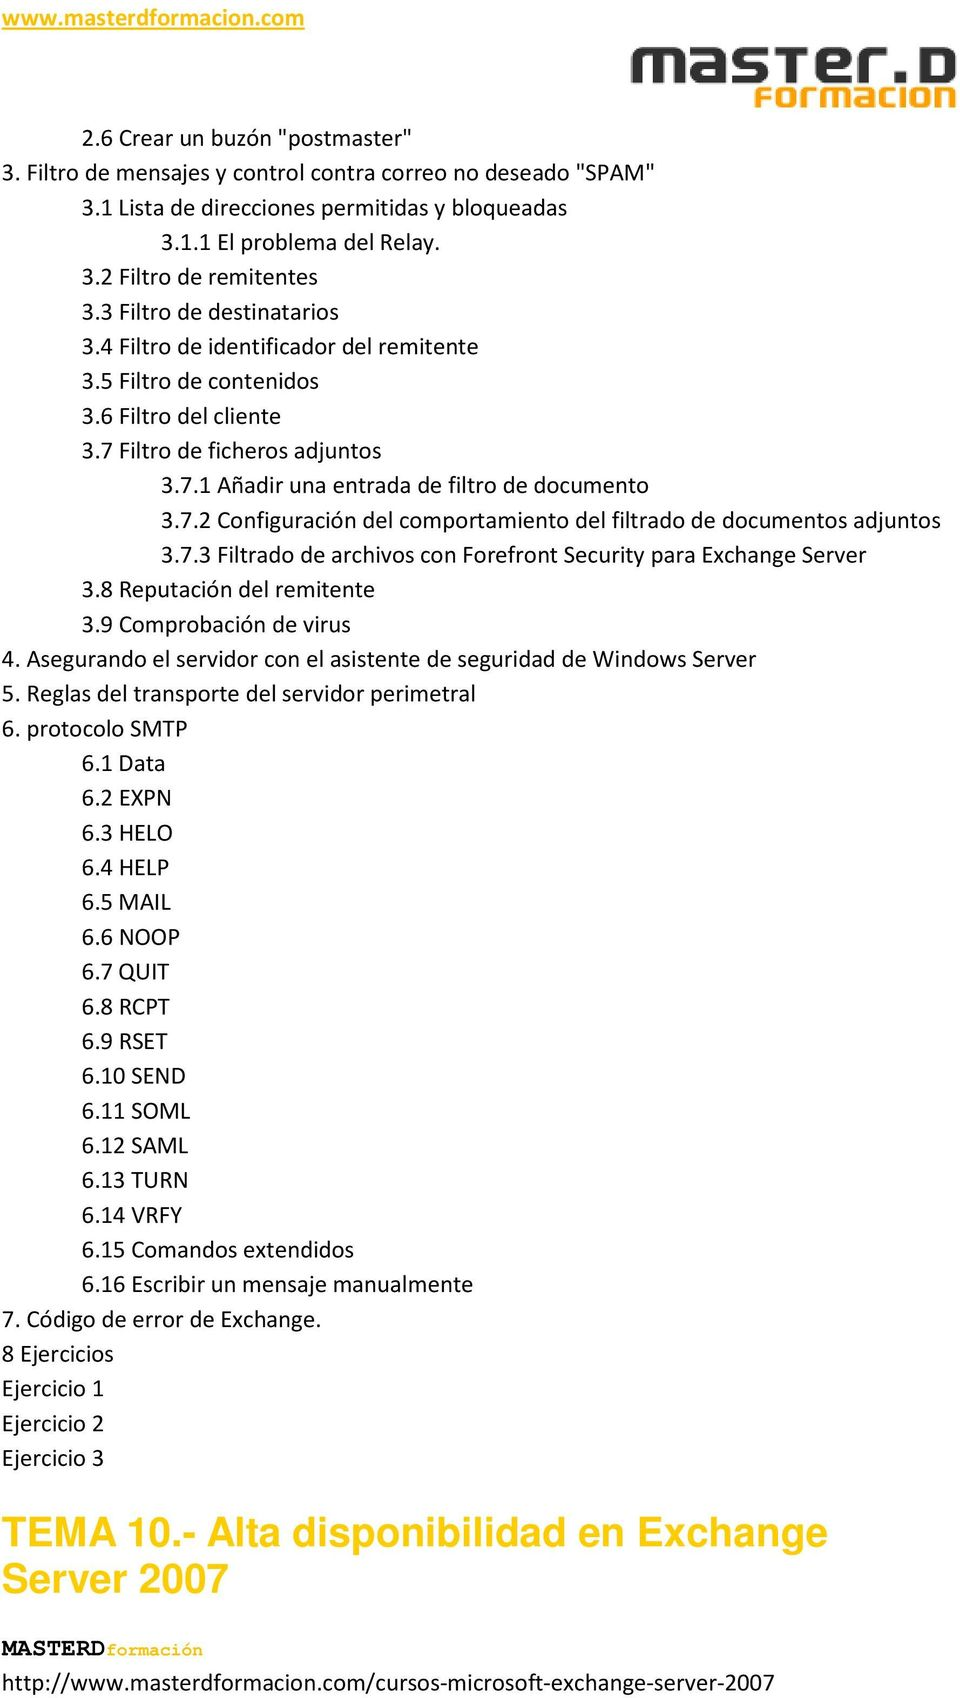 7.3 Filtrado de archivos con Forefront Security para Exchange Server 3.8 Reputación del remitente 3.9 Comprobación de virus 4. Asegurando el servidor con el asistente de seguridad de Windows Server 5.